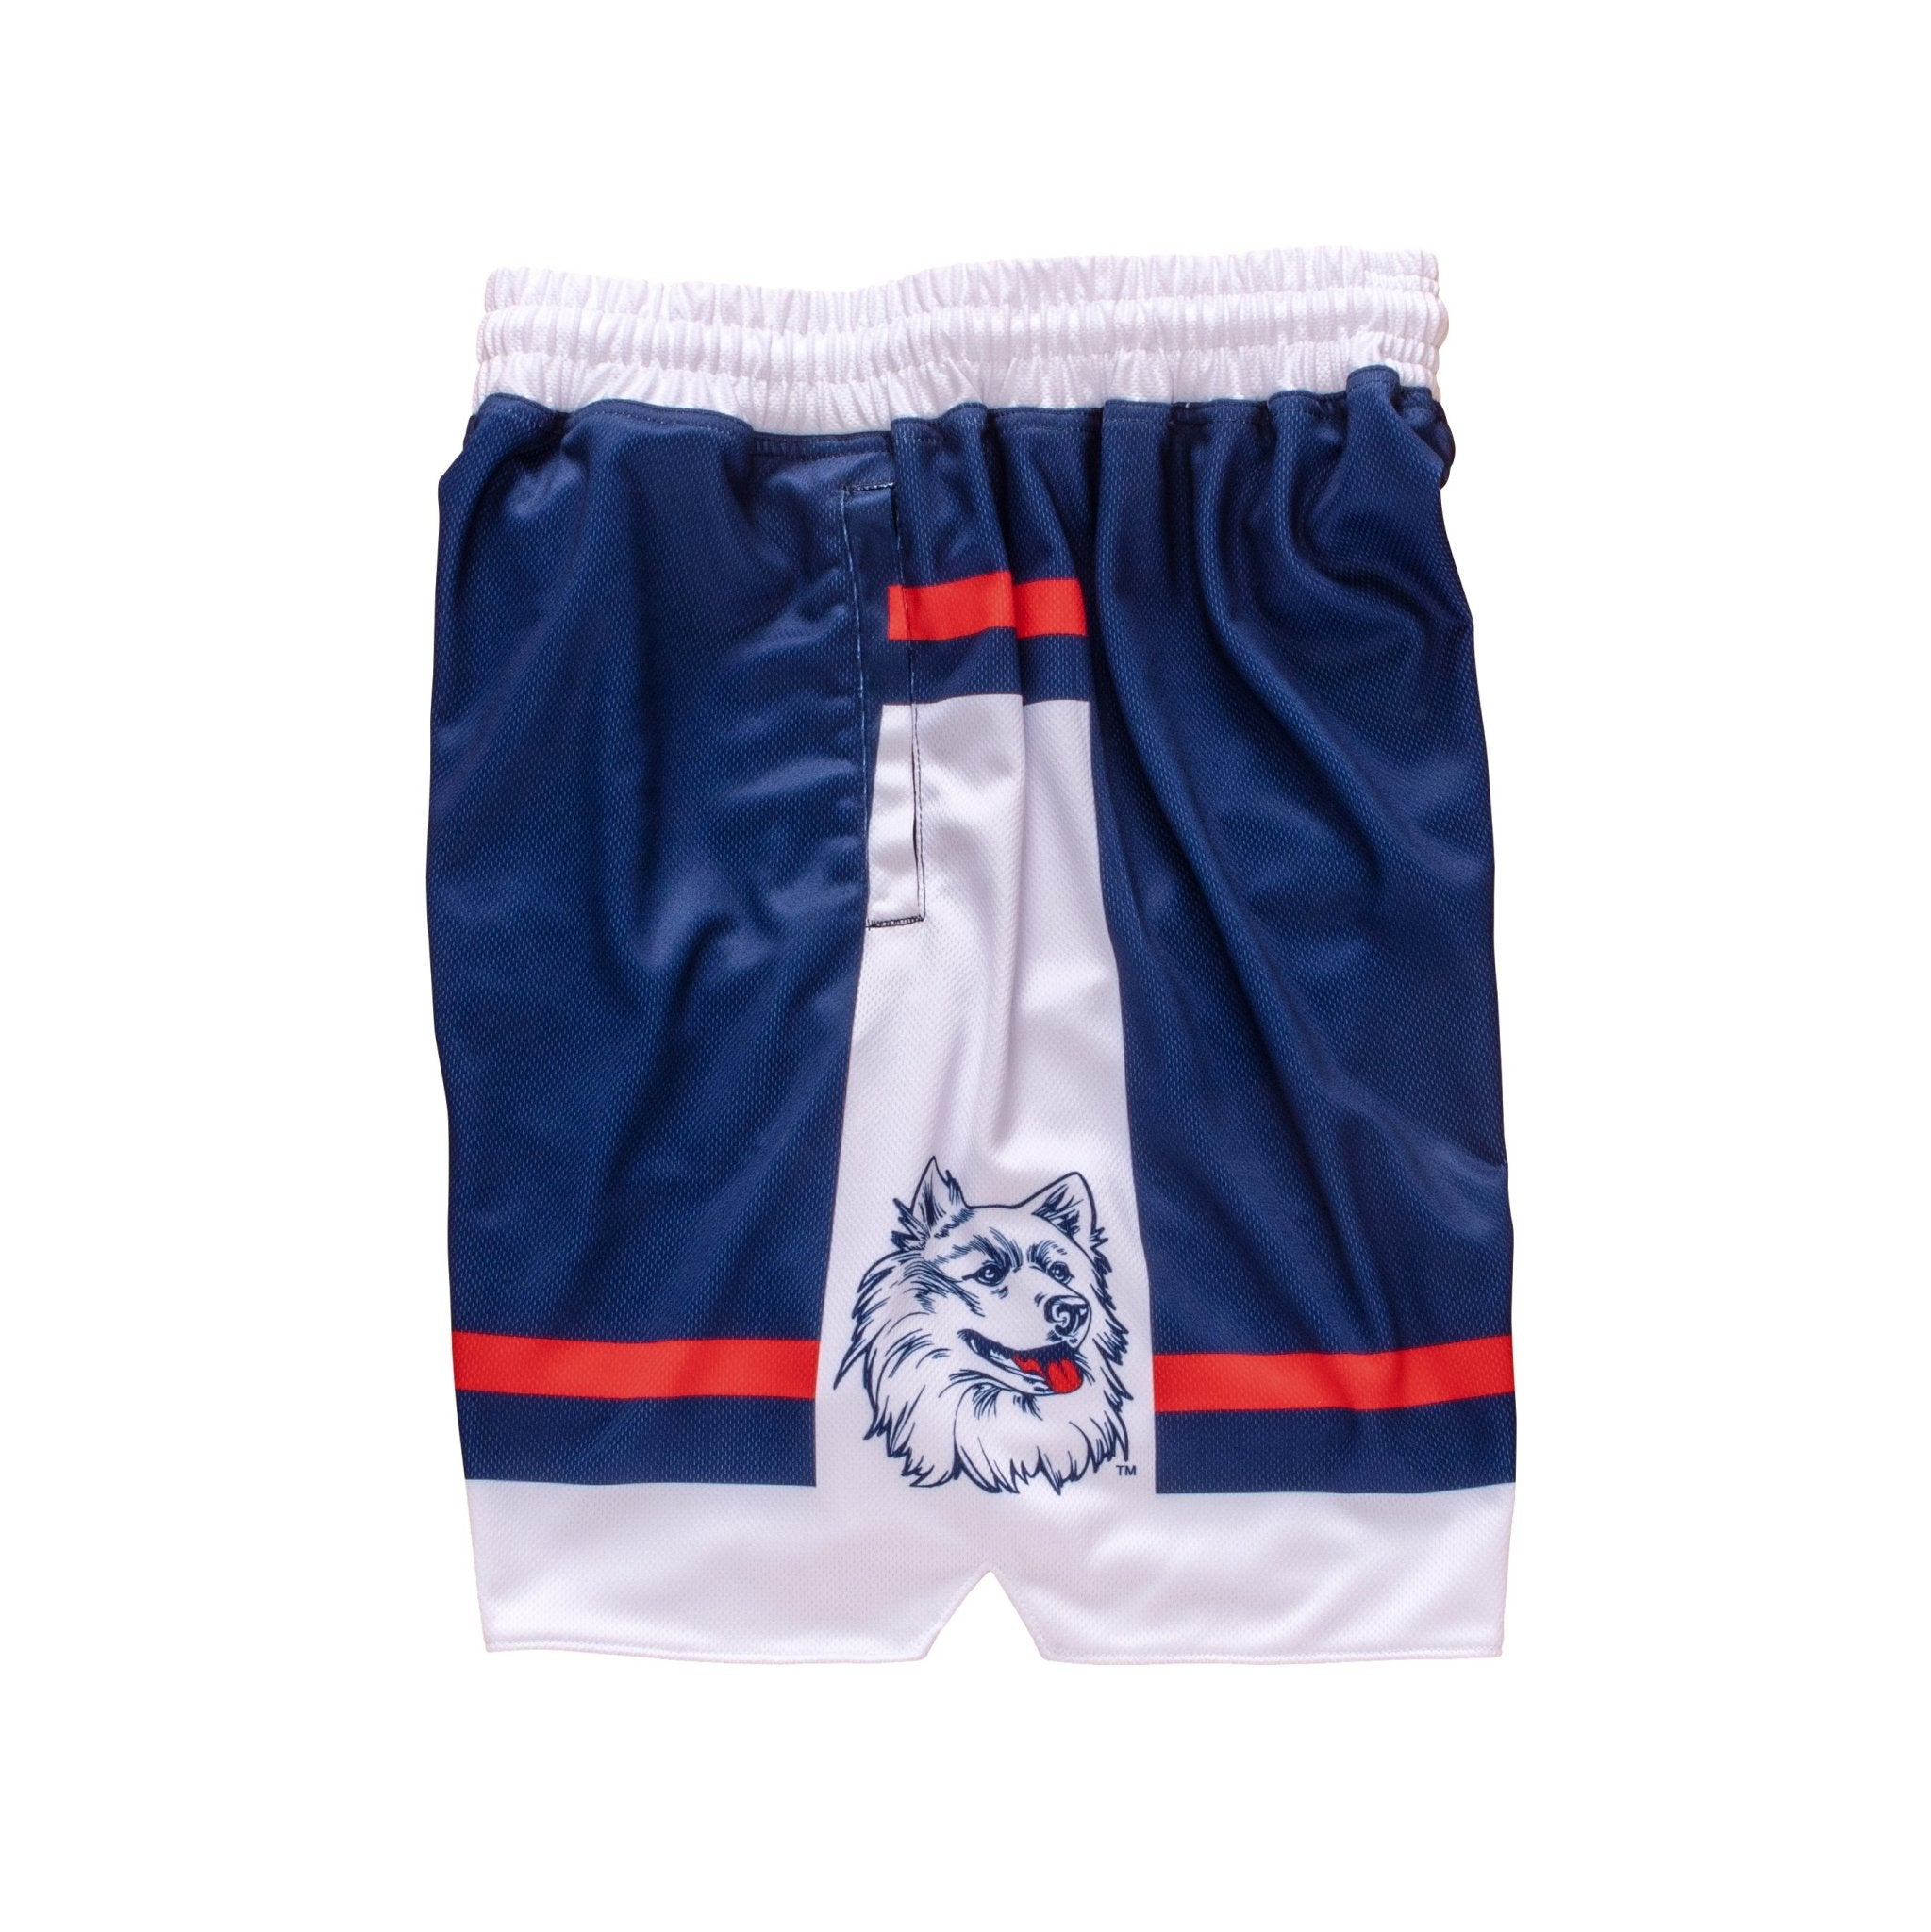 UConn Huskies 1998-1999 Retro Shorts - SLAM